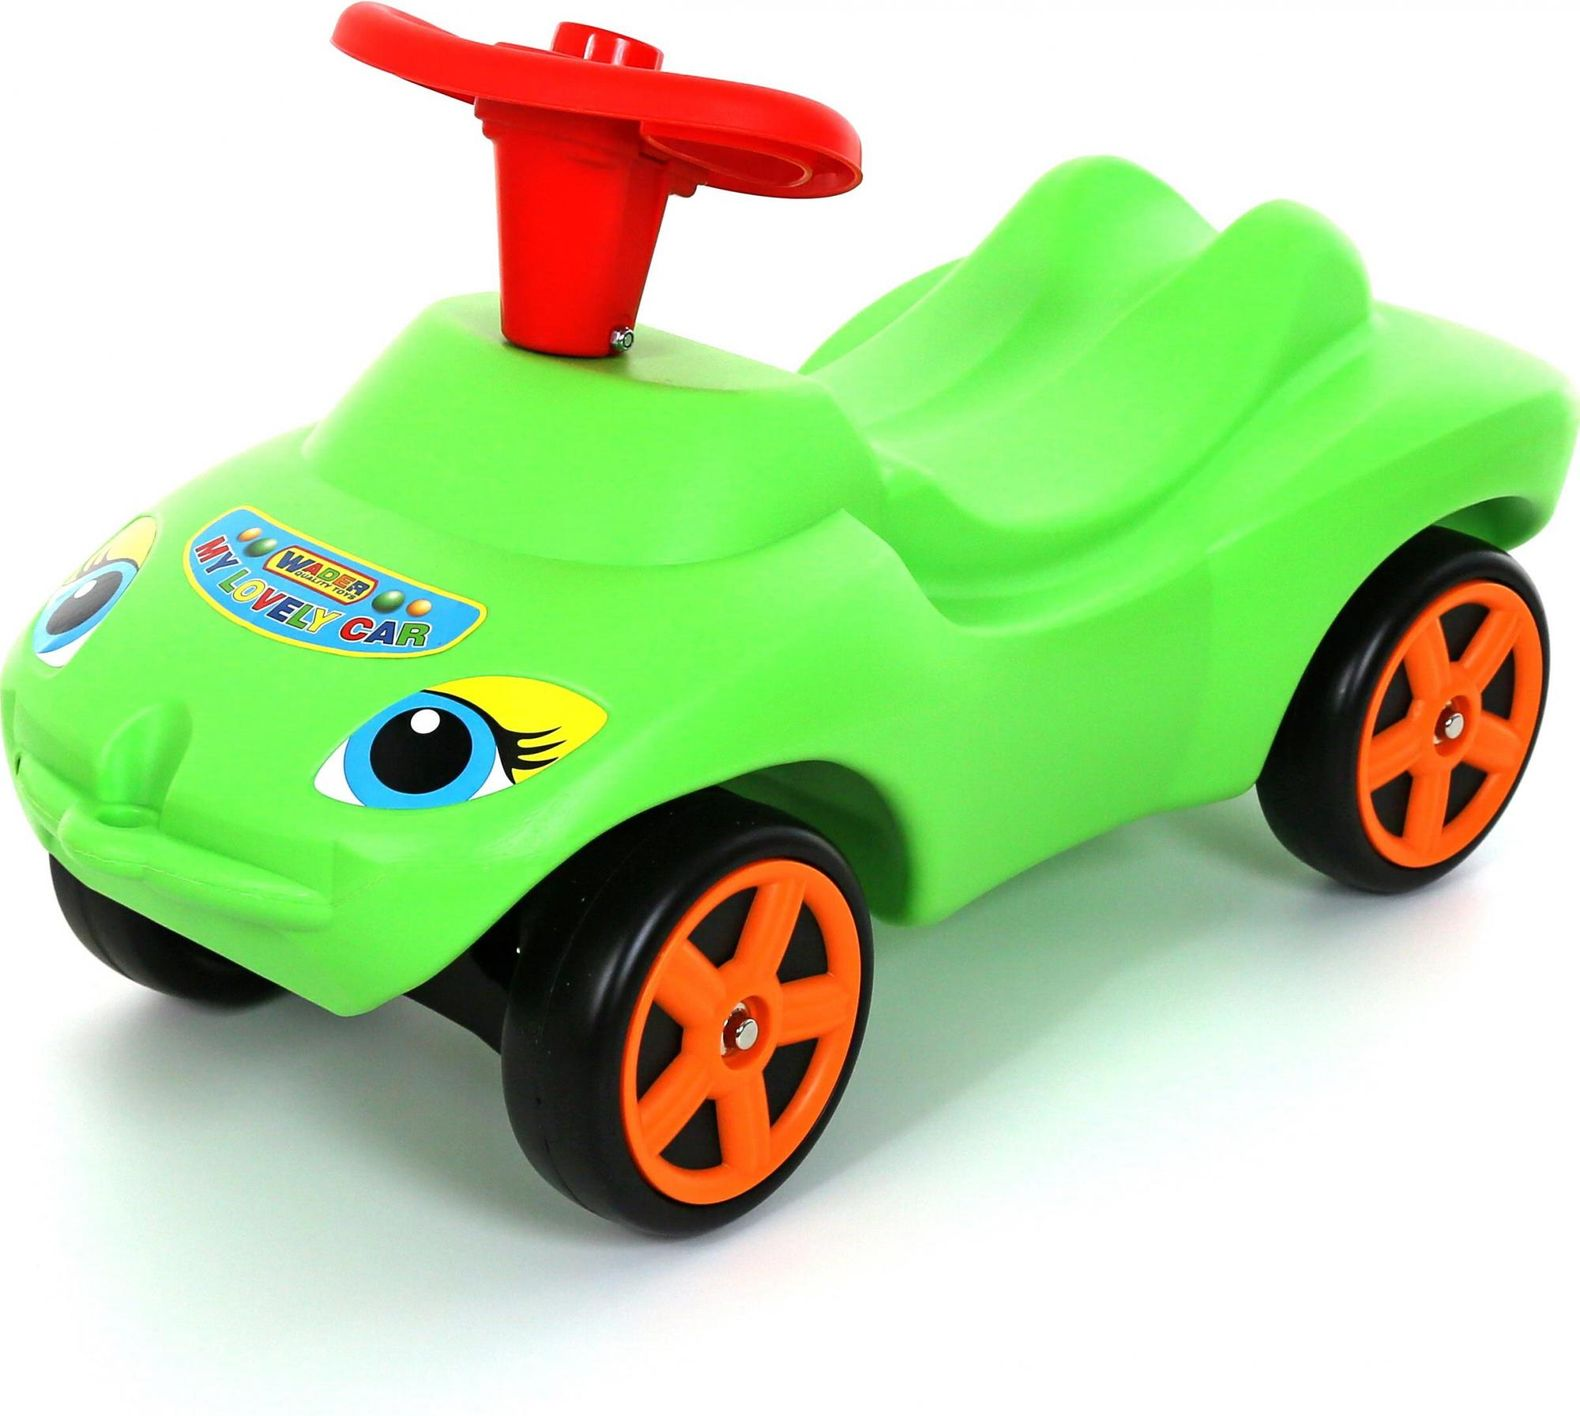 Wheelchair My favorite car green with sound signal my favorite bear